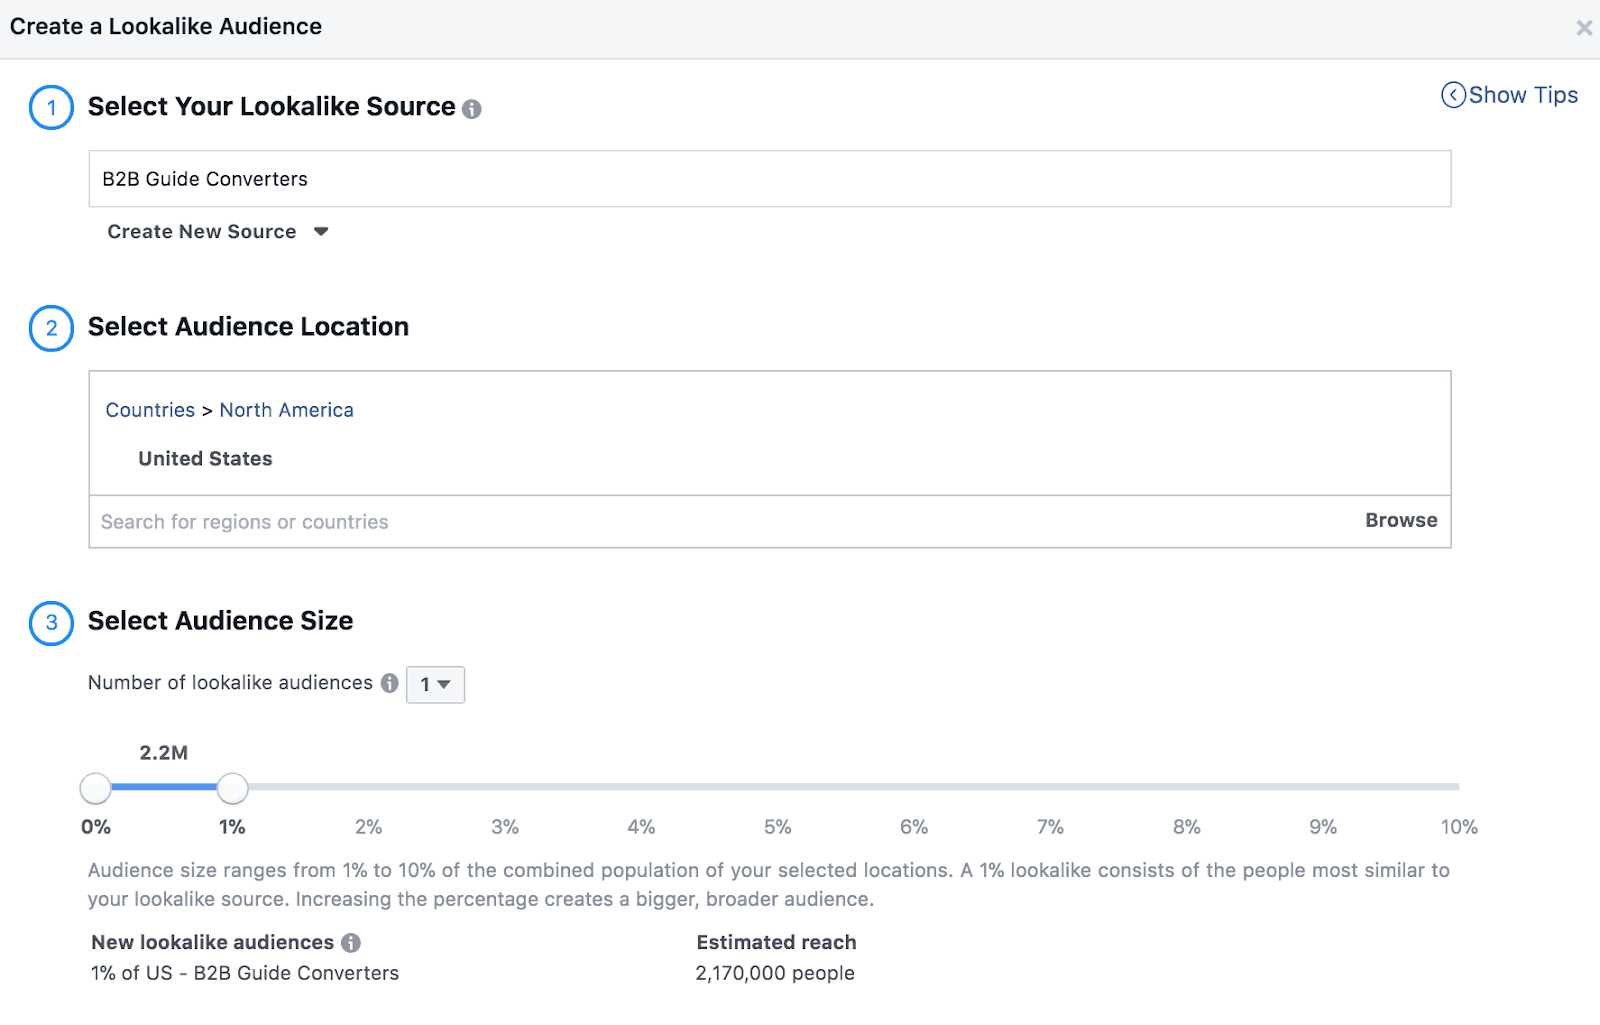 Screenshot showing how to select your audience size for a lookalike audience.